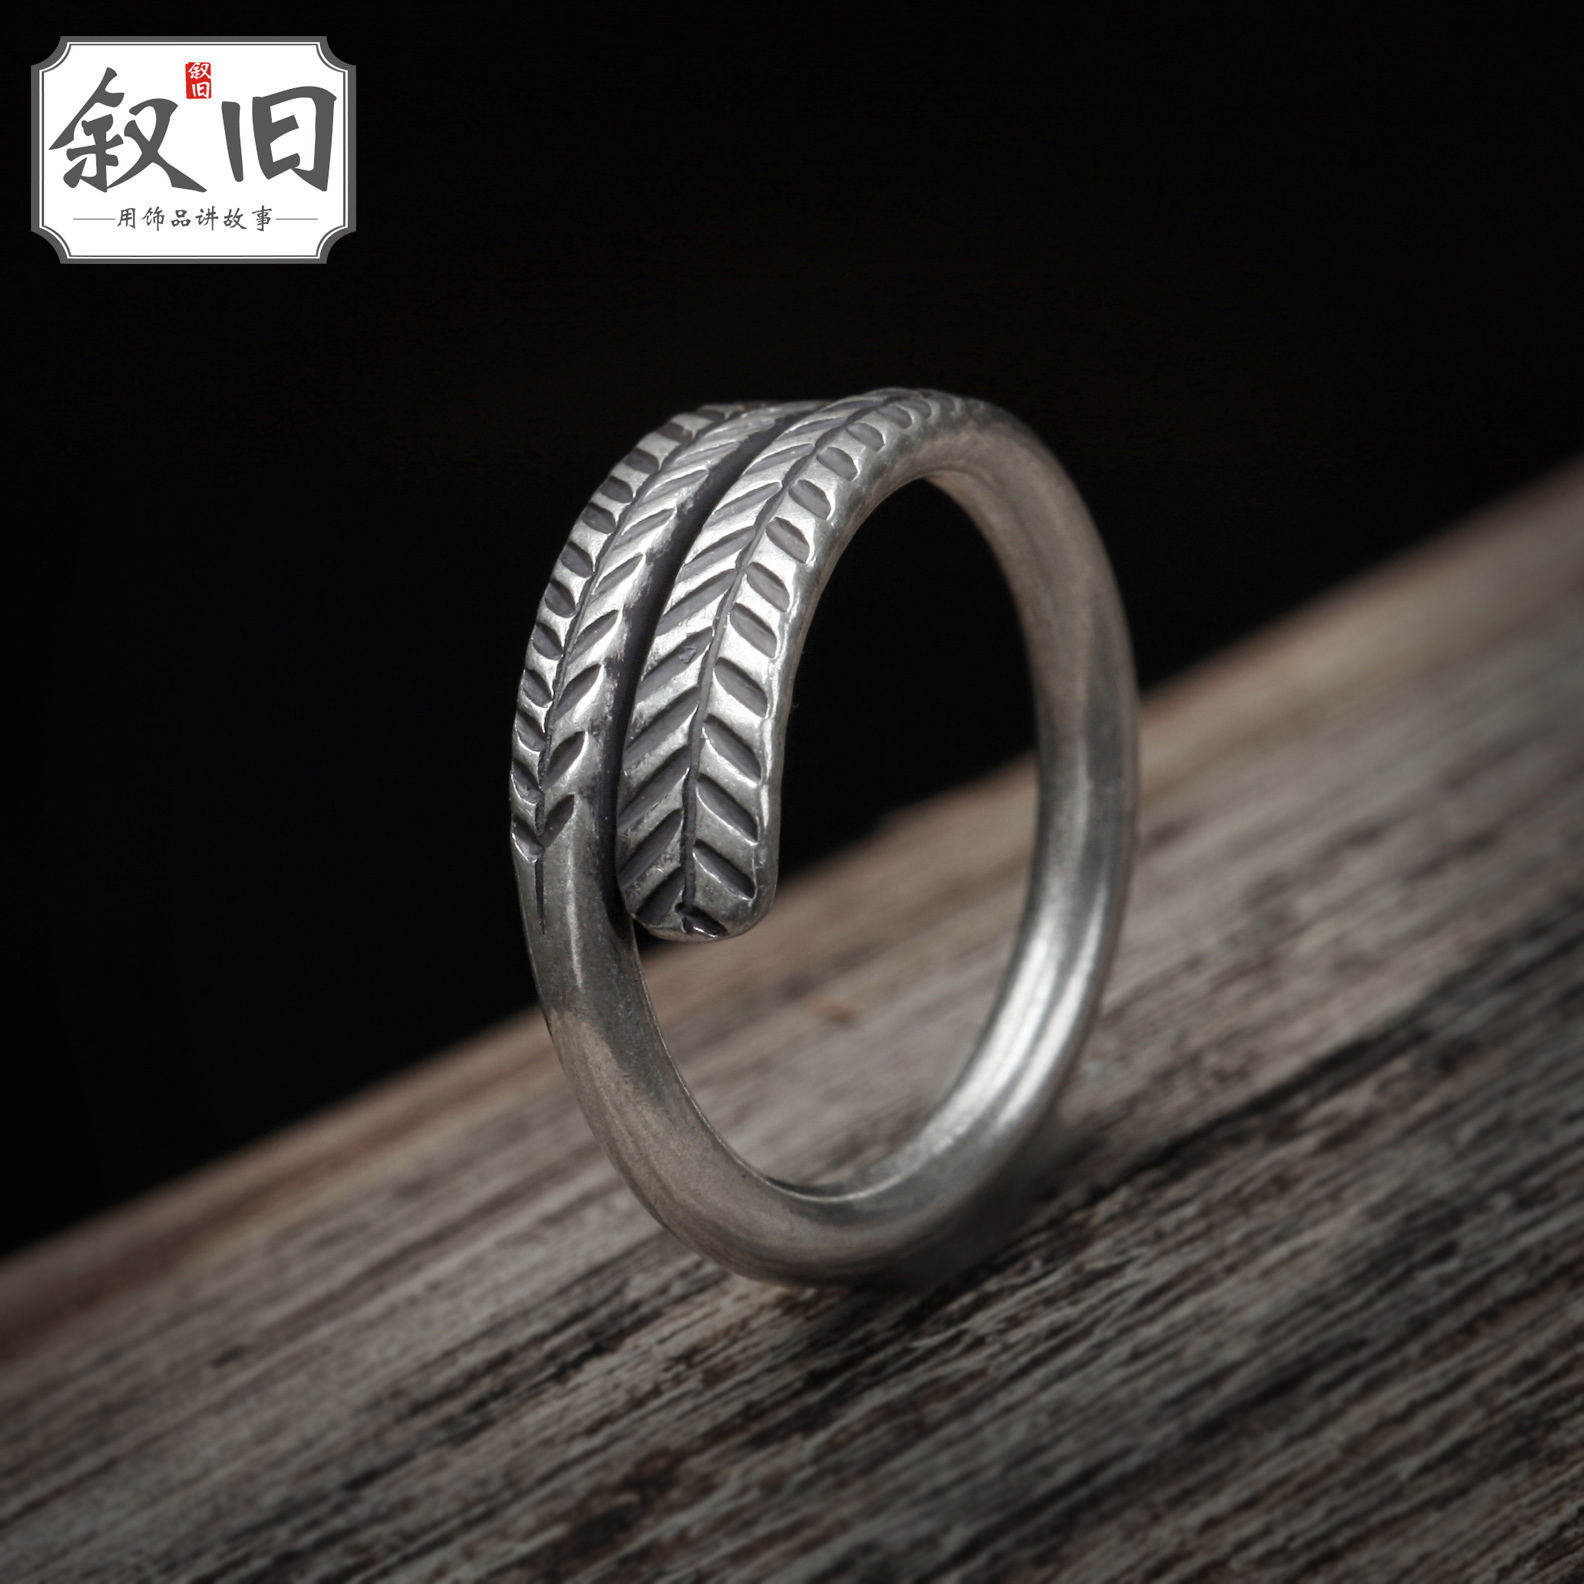 Reminisced designer original handmade silver ring 99 silver rings female ring opening products [harvest] national wind